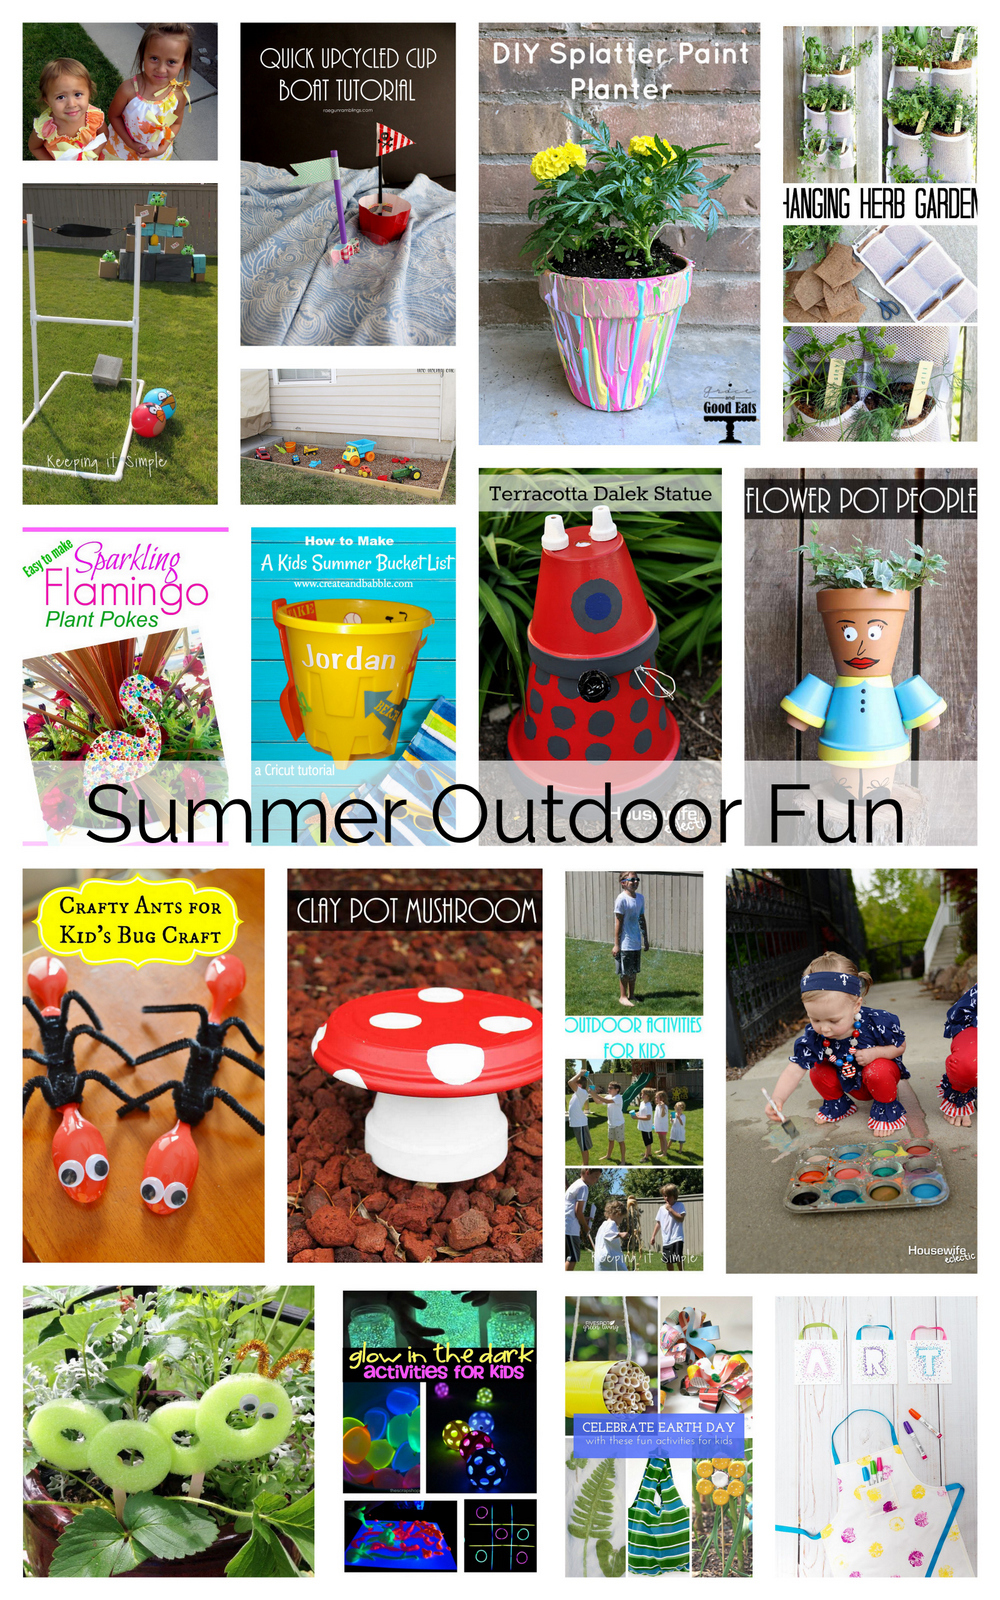 Great list of outdoor activities for kids perfect for school breaks